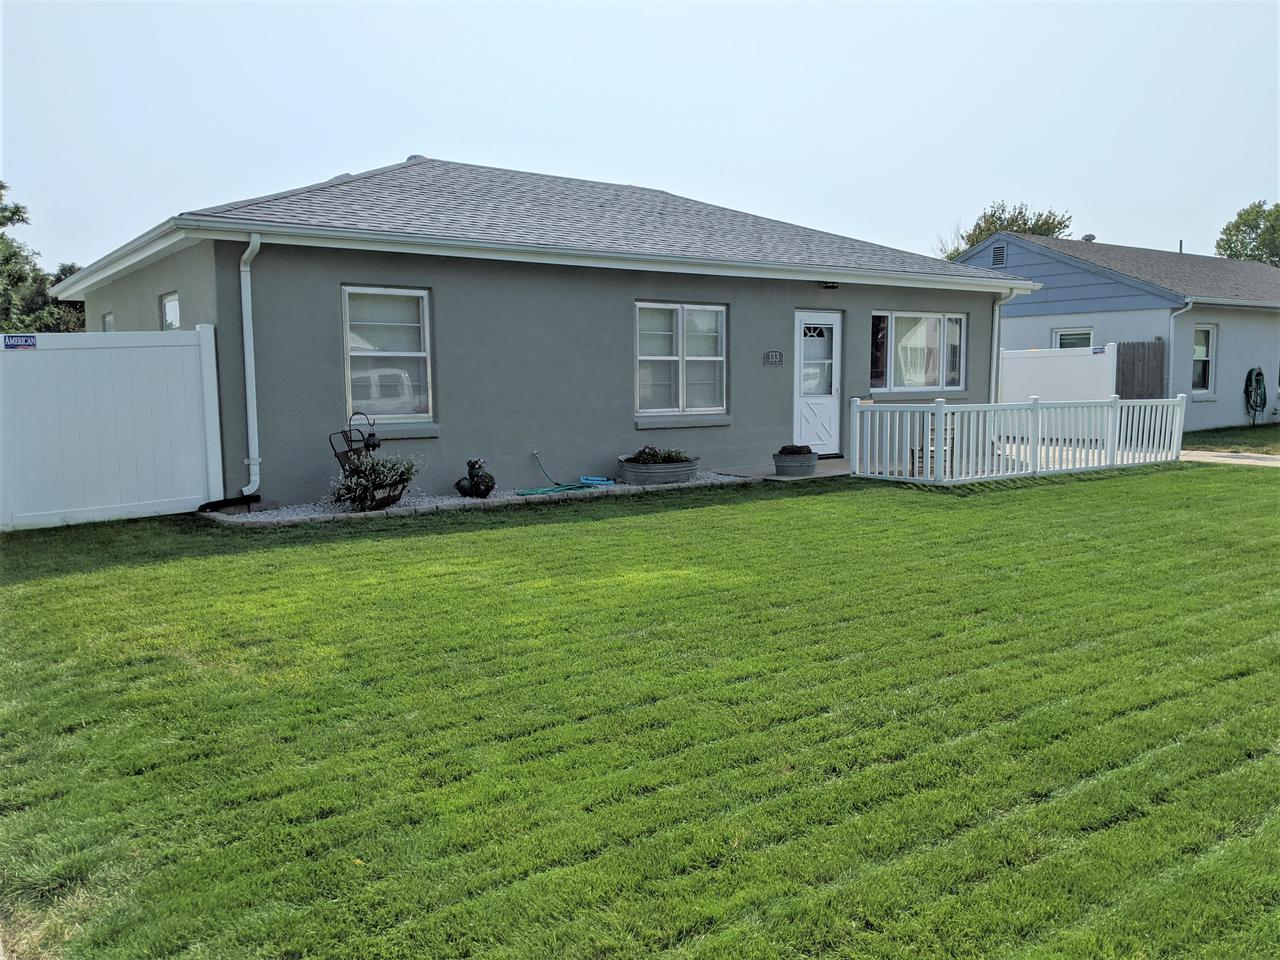 133 W. 6th Ave. Holdrege, NE 68949